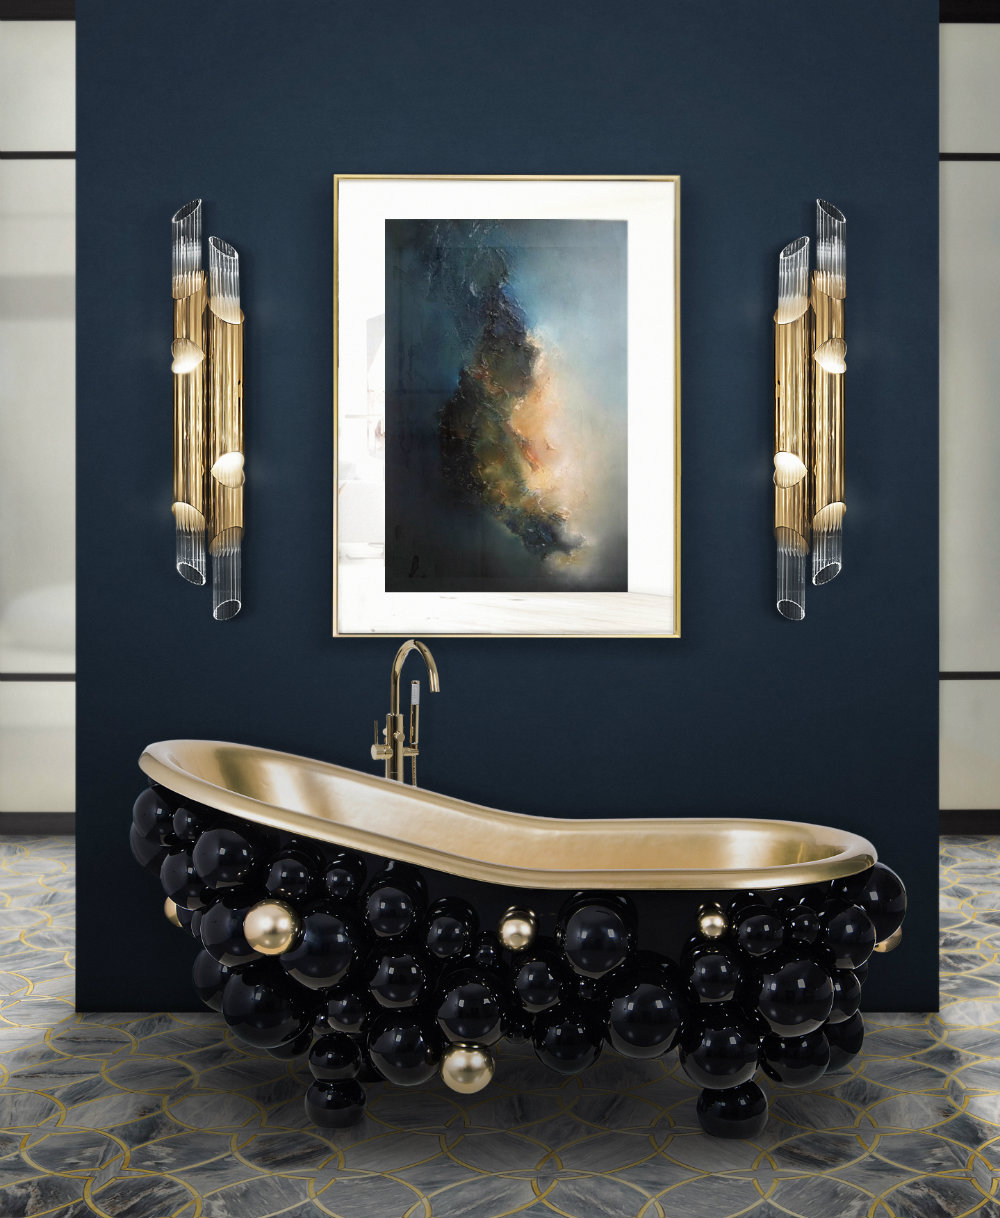 10 Luxury Bathrooms For The Master Bedroom Of Your Dreams 03 luxury bathrooms 10 Luxury Bathrooms For The Master Bedroom Of Your Dreams 10 Luxury Bathrooms For The Master Bedroom Of Your Dreams 03